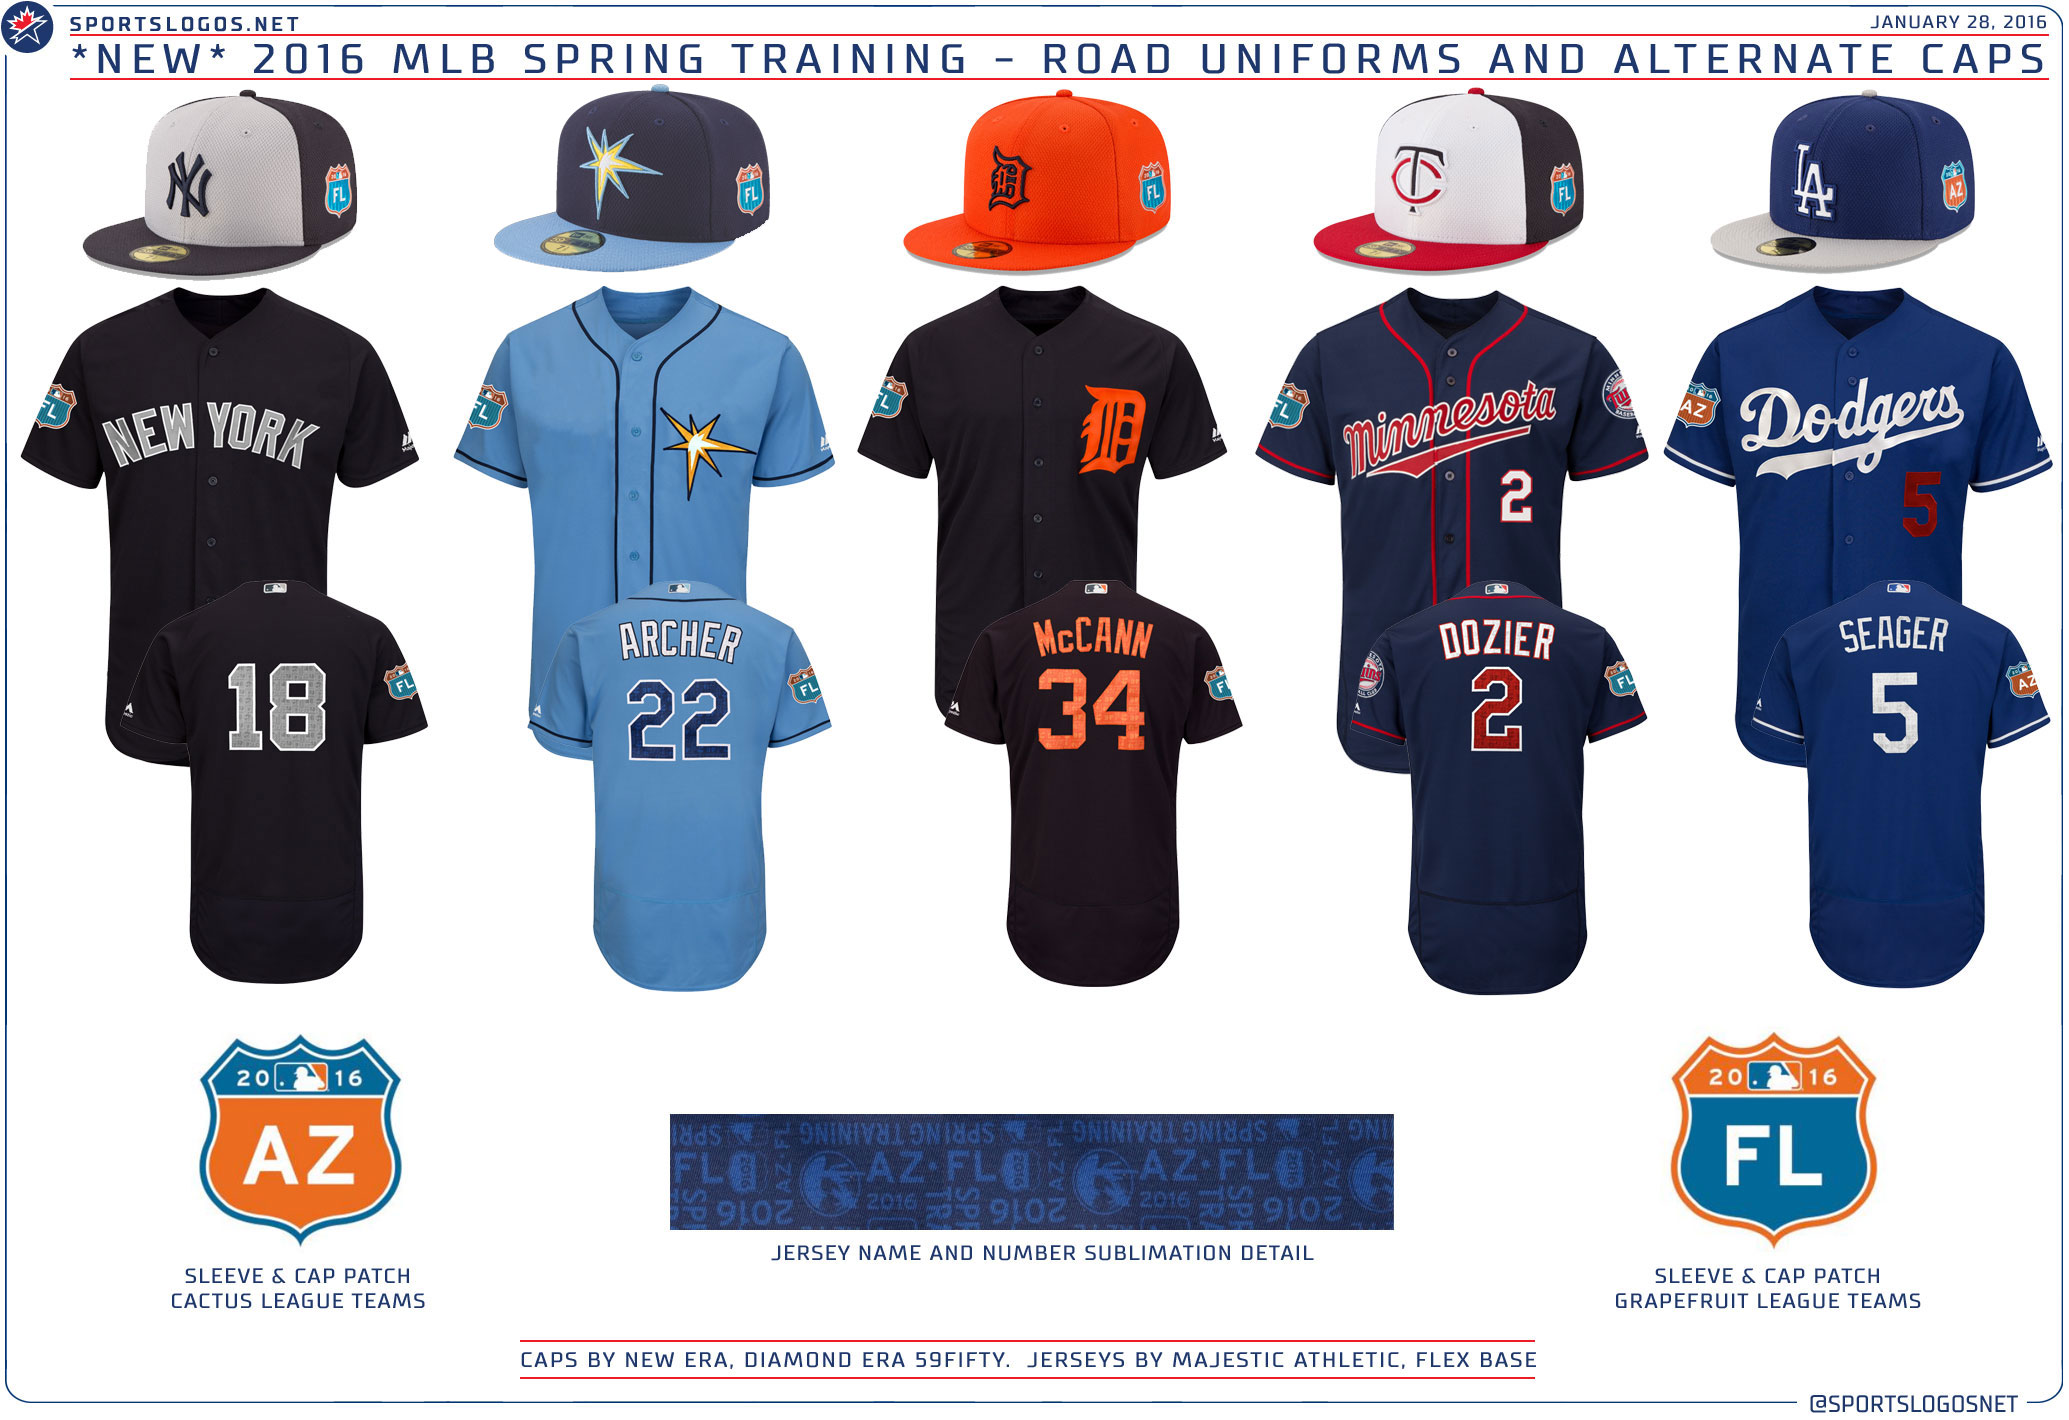 e0873863c72 2016 Spring Training Uniforms - Road and Alternates Yankees Rays Tigers  Twins Dodgers